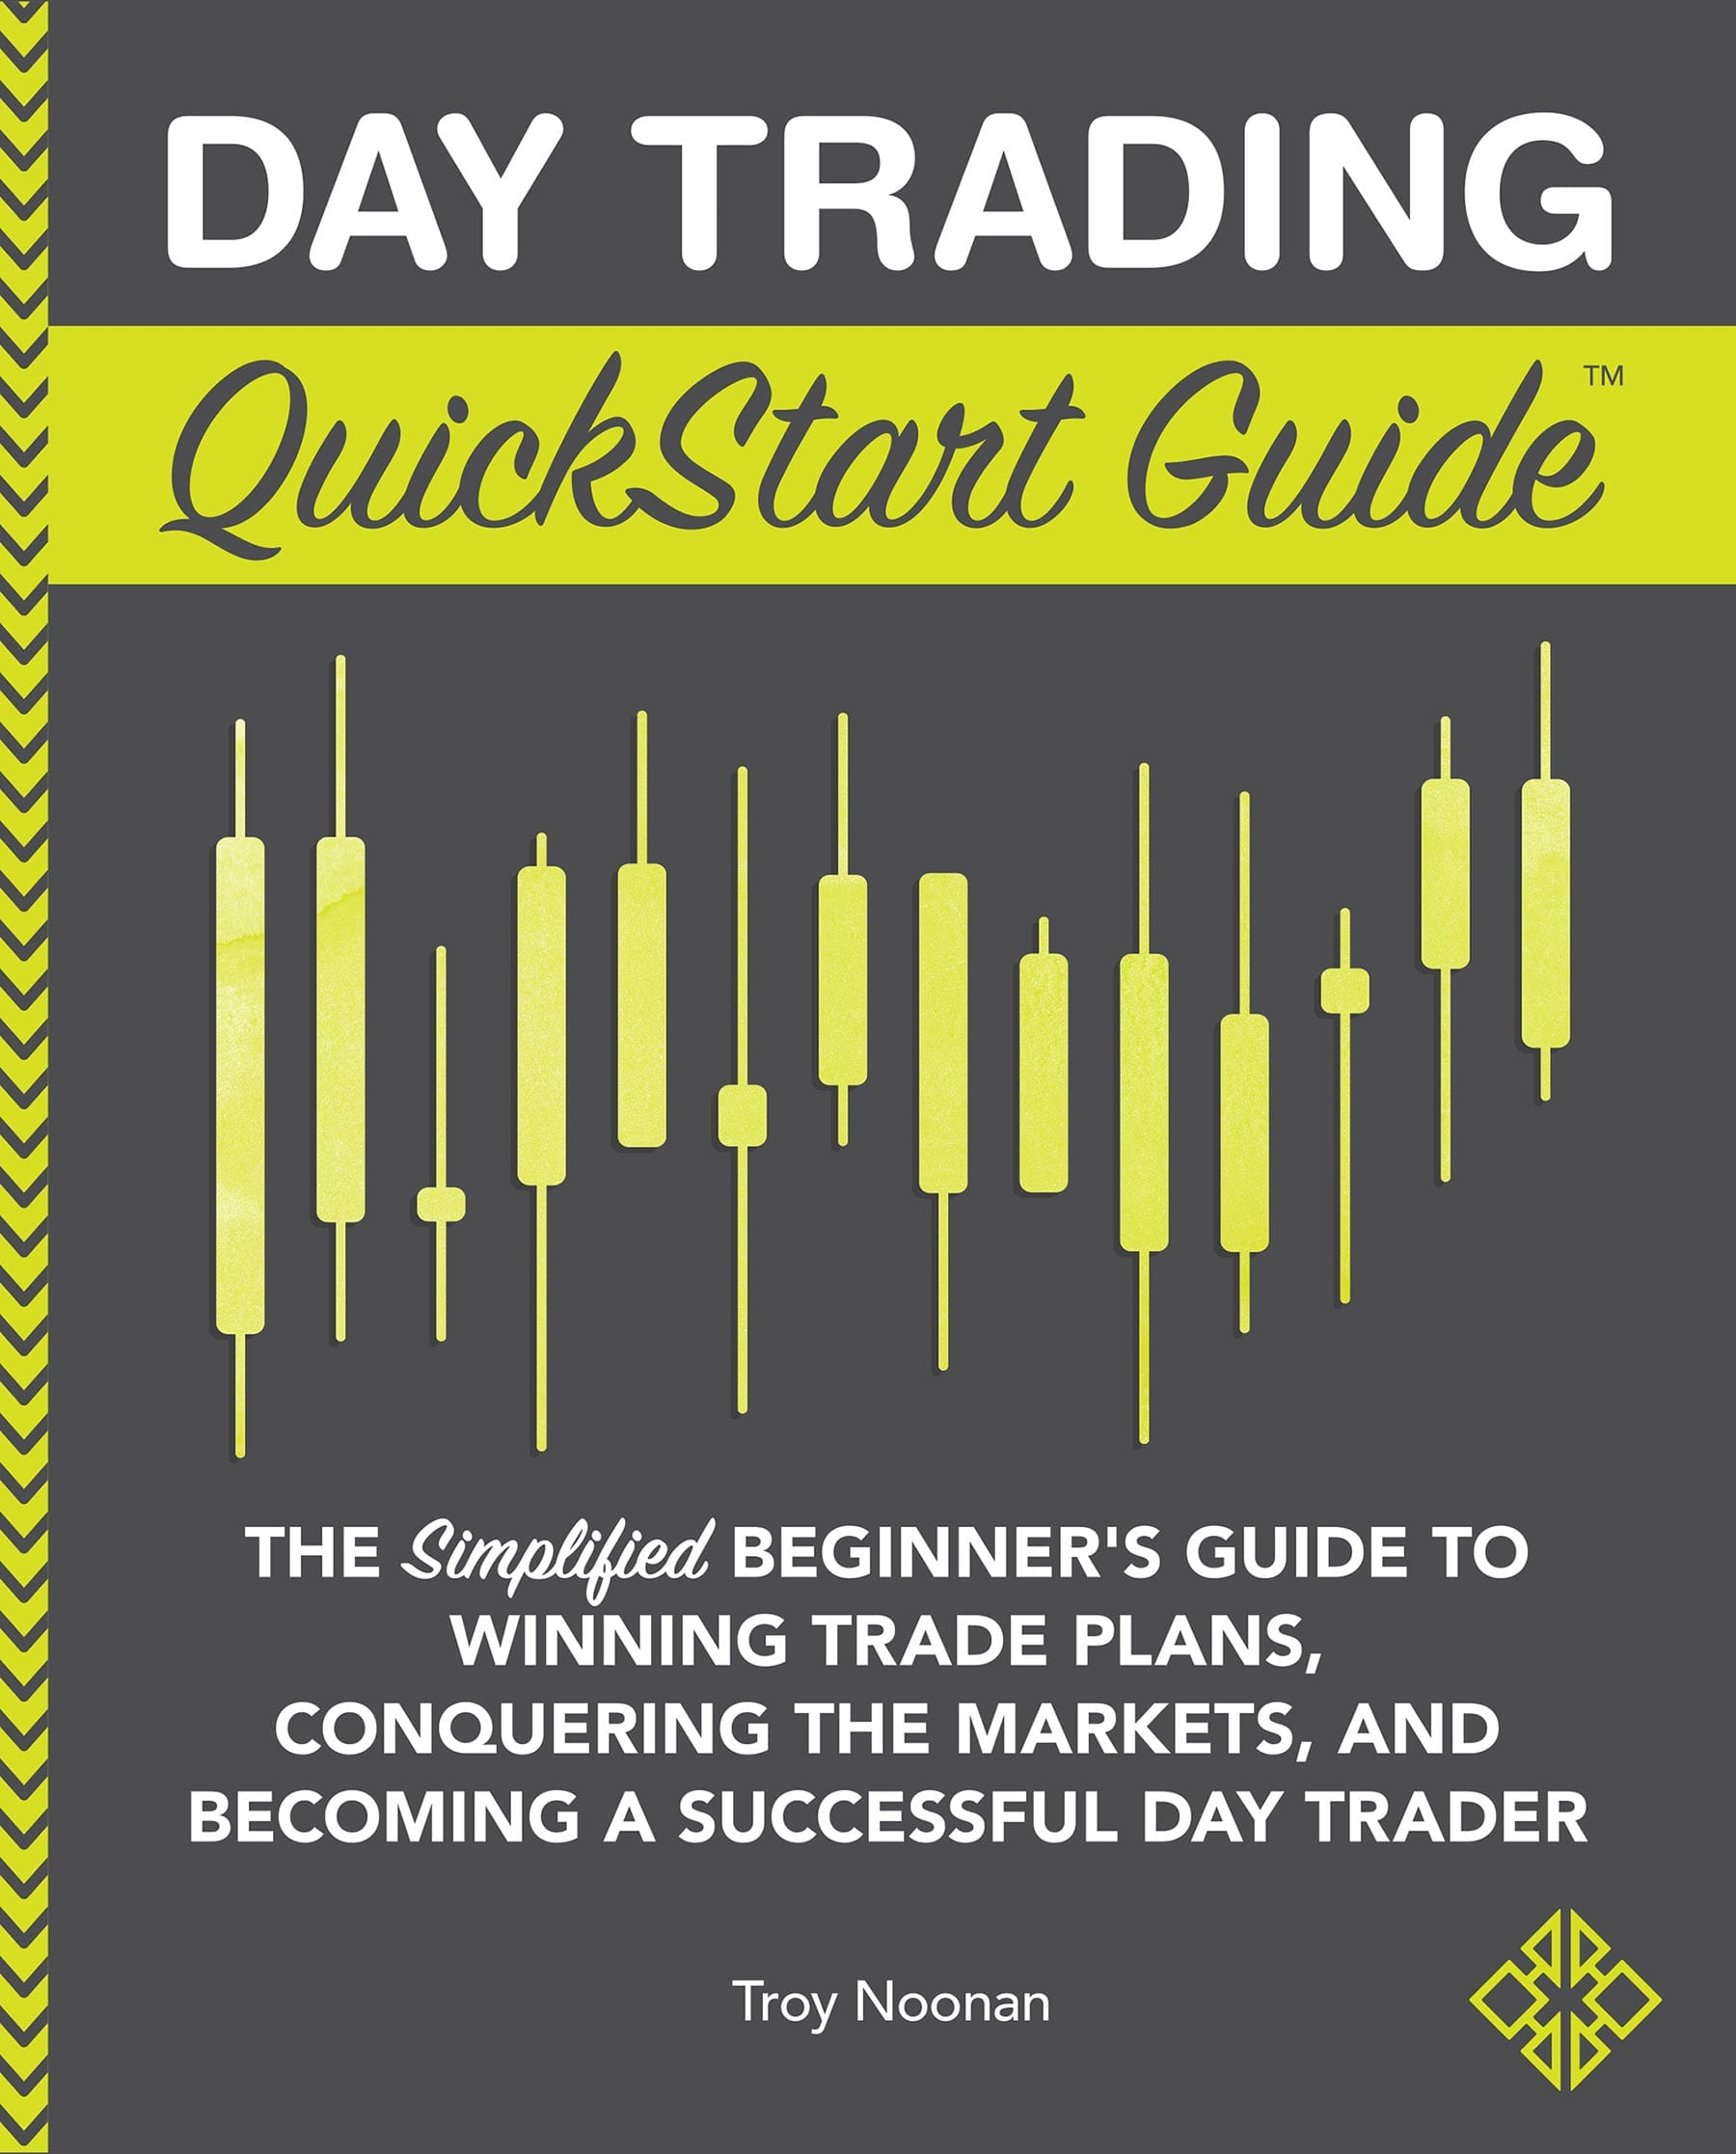 Day Trading QuickStart Guide Cover